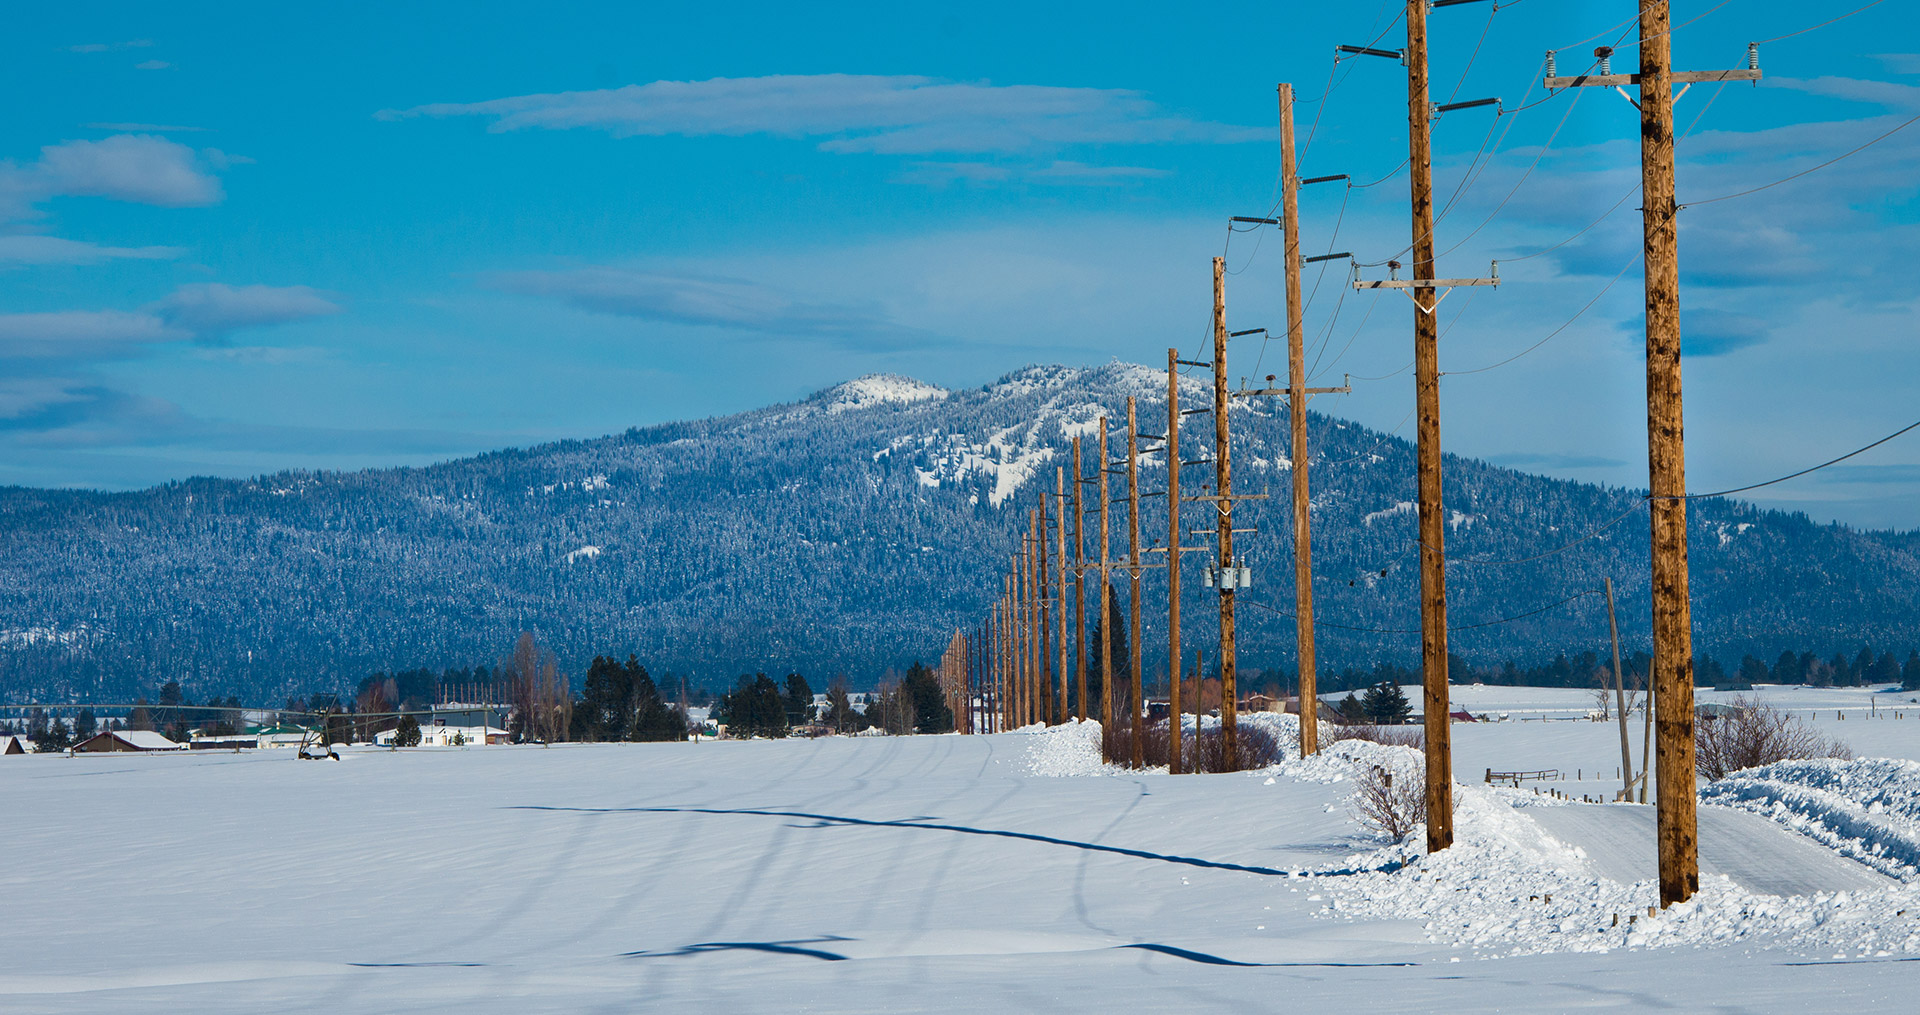 Winter scene of snow, power lines, and mountains.